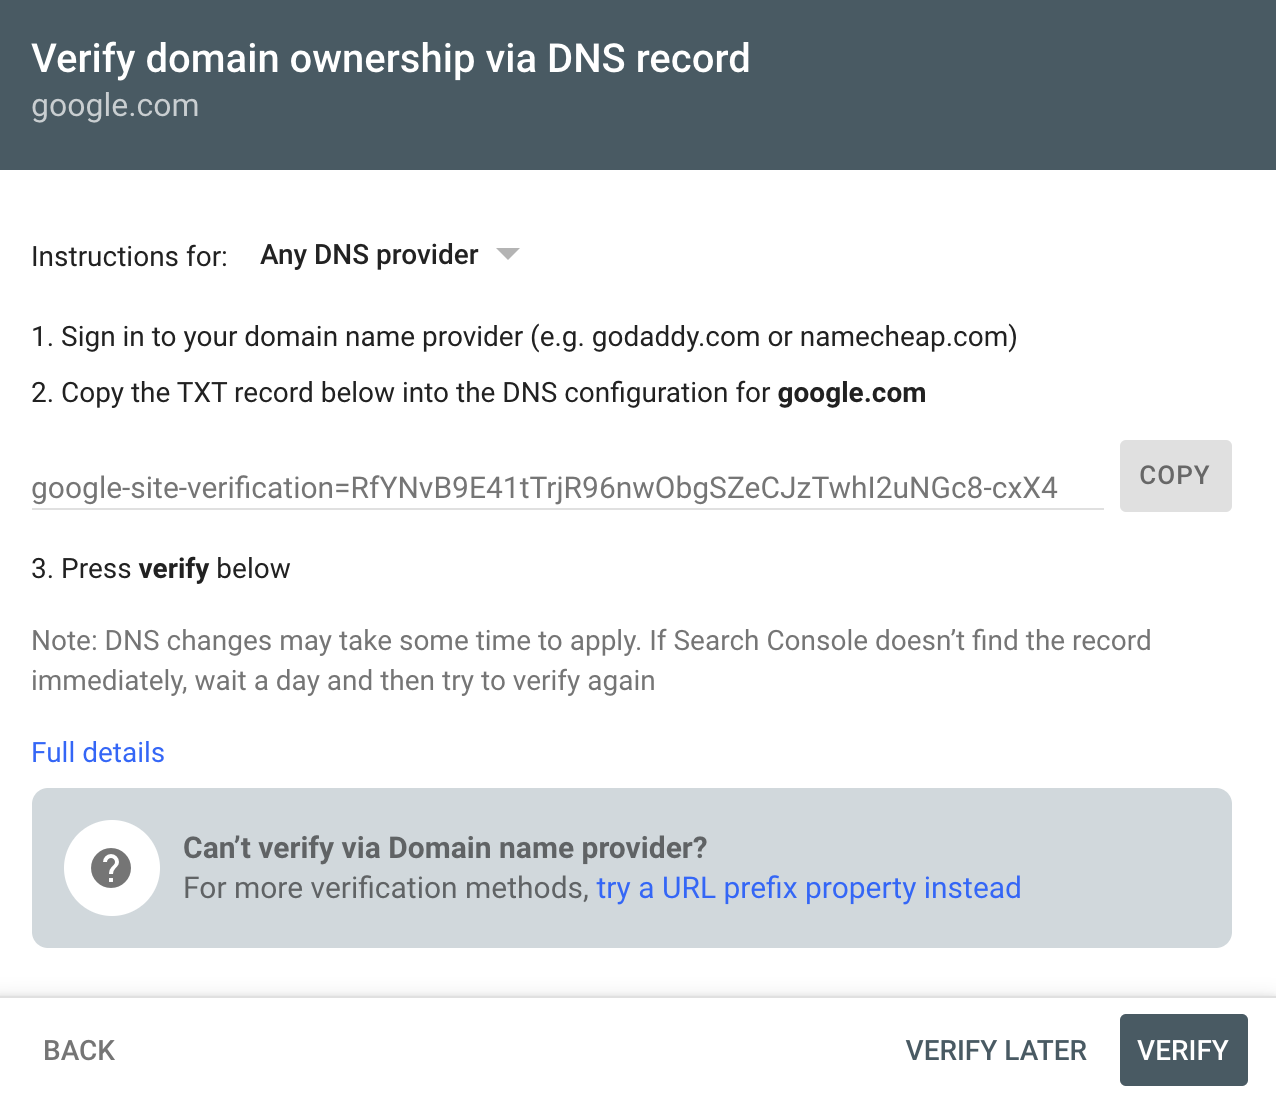 Google Search Console page - Verify domain ownership via DNS record